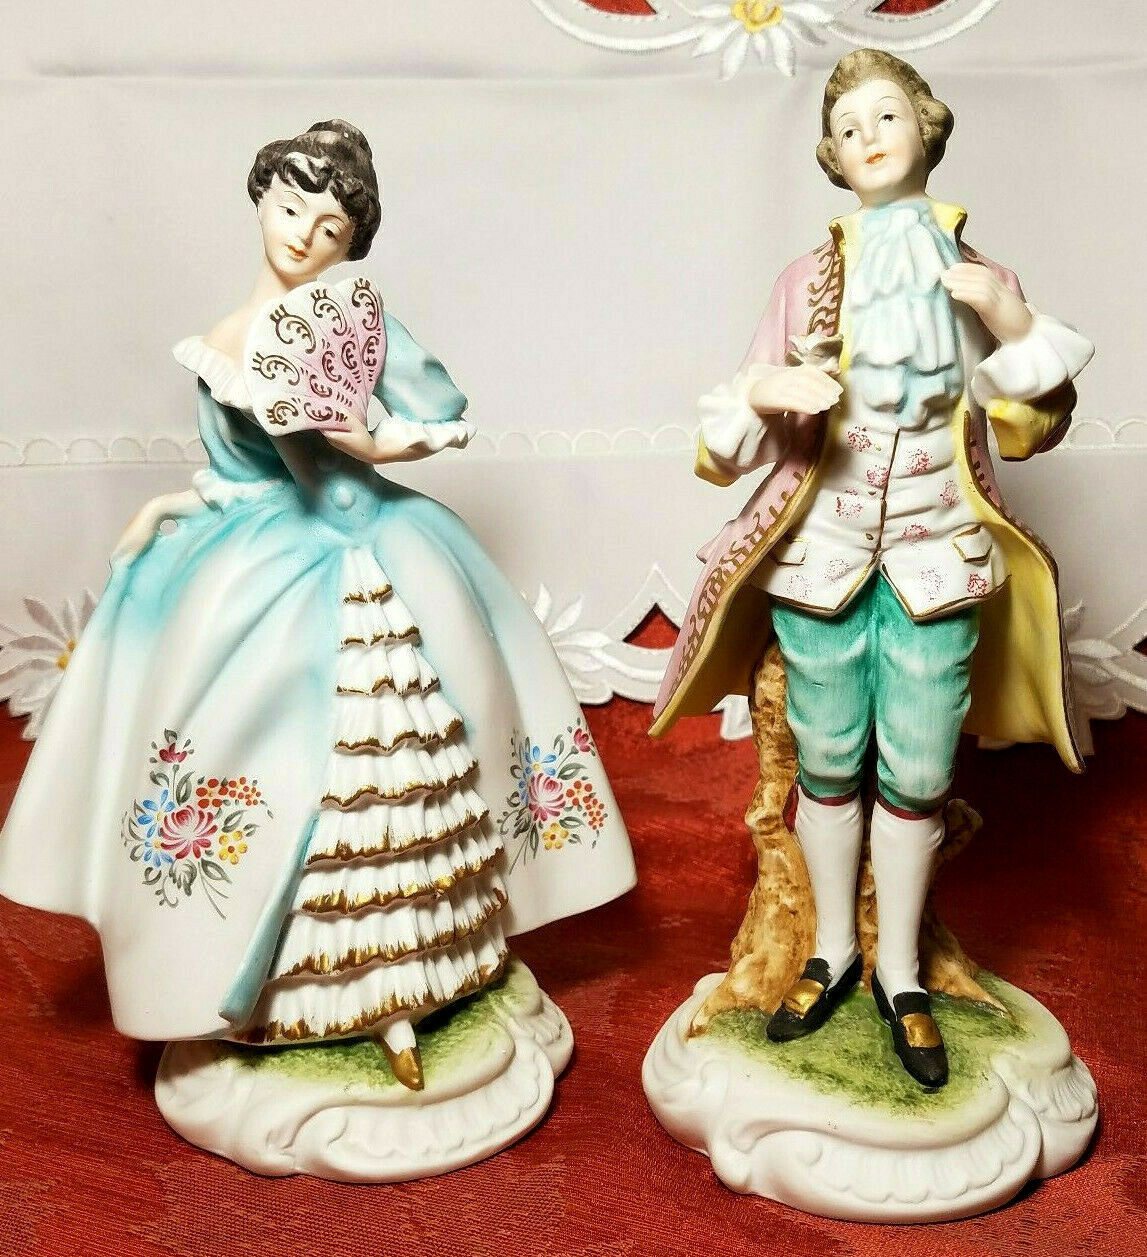 Vintage Lefton China Pair of Colonial Man & Woman Figurines KW7225